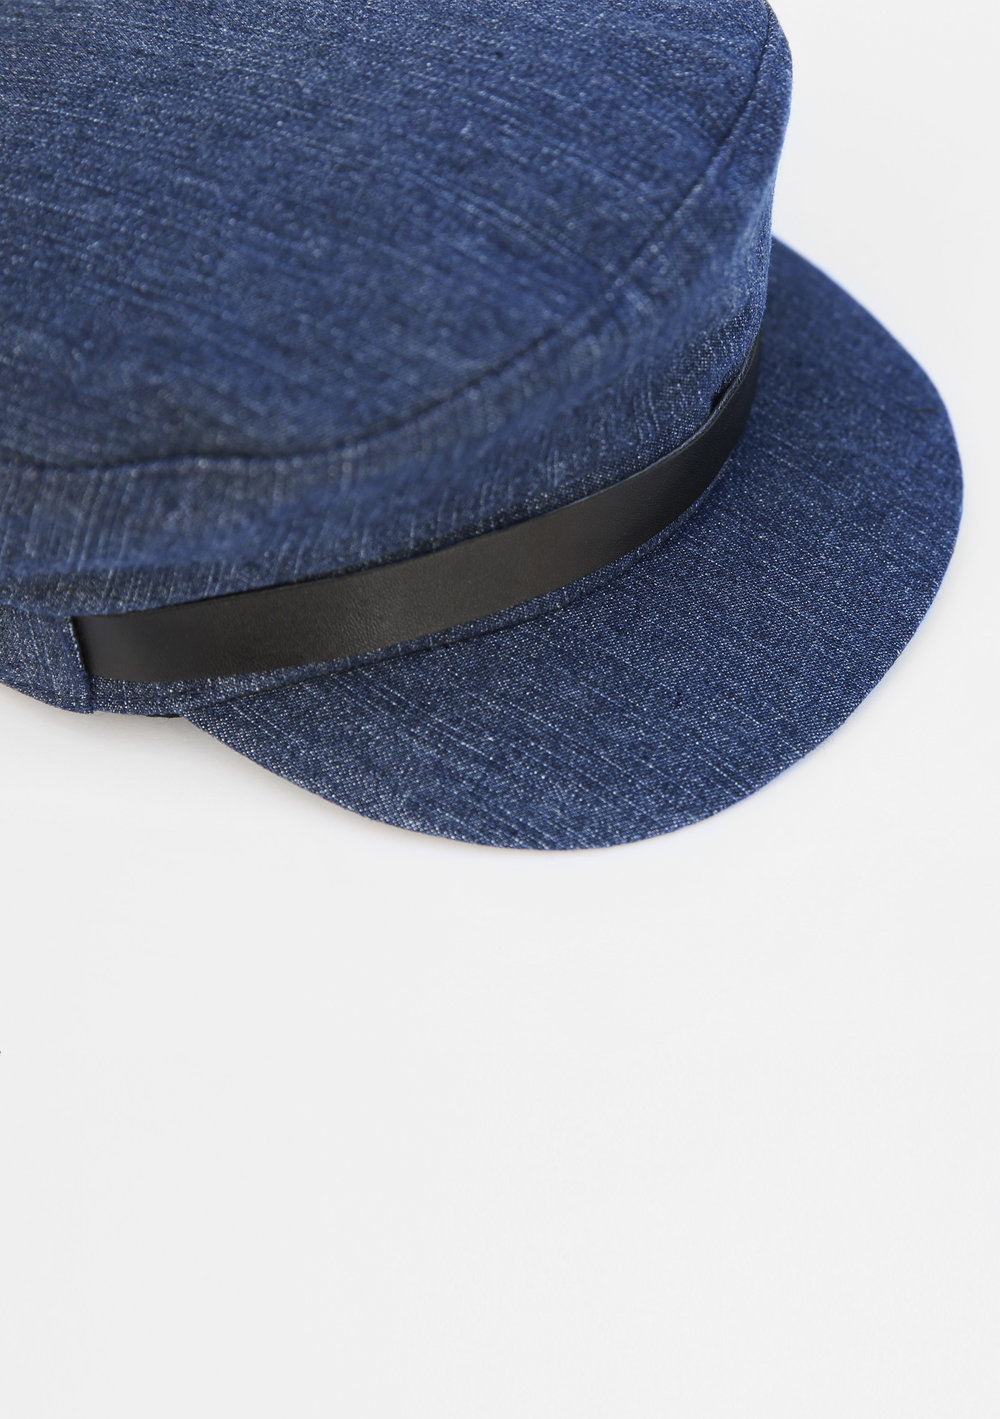 closeup_denim_cap_66thelabel.jpg